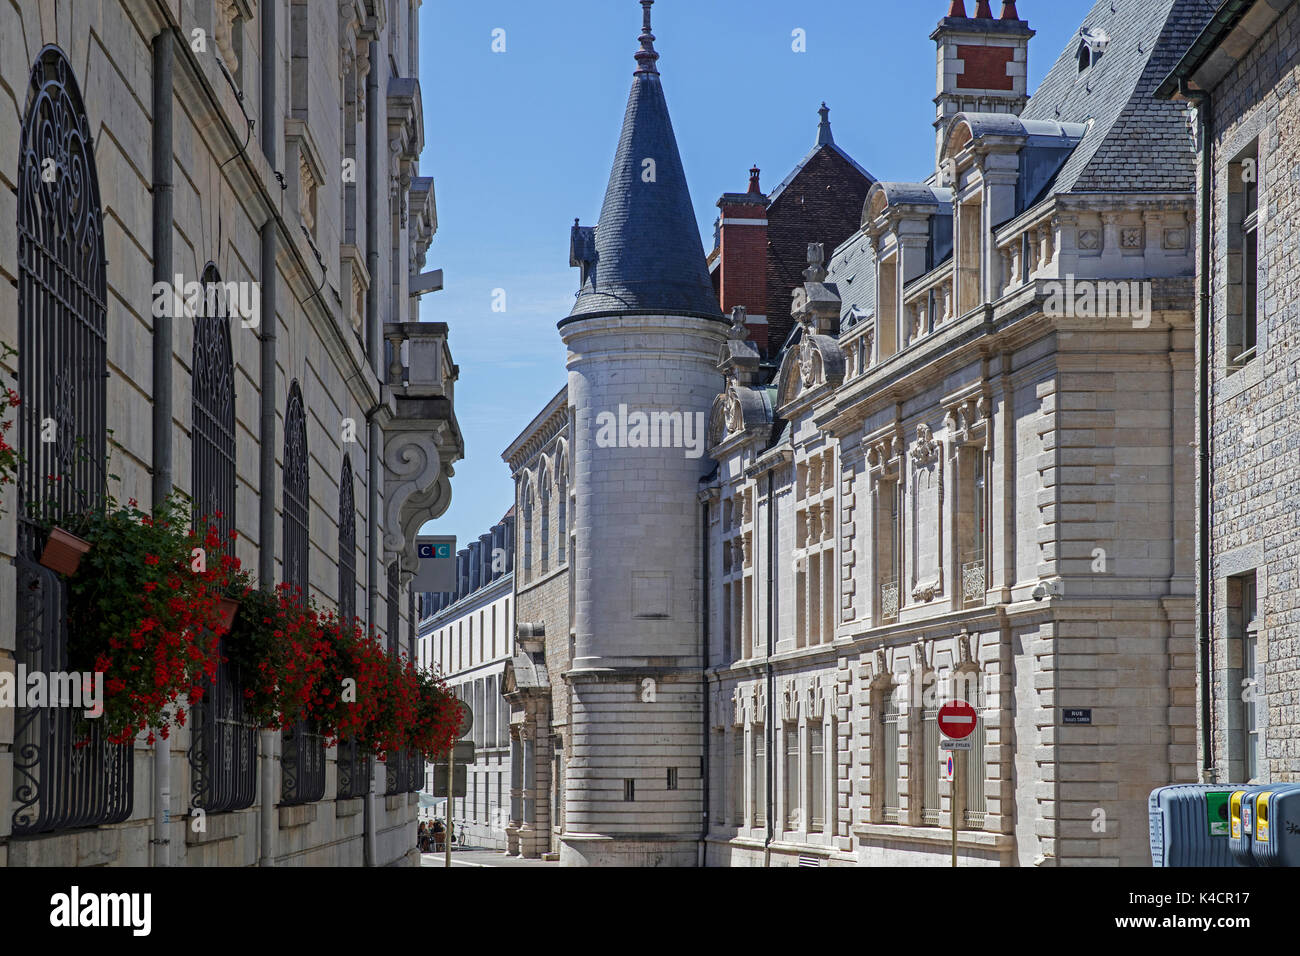 Historical buildings in the old city of Besançon, Doubs, Bourgogne-Franche-Comté, France - Stock Image